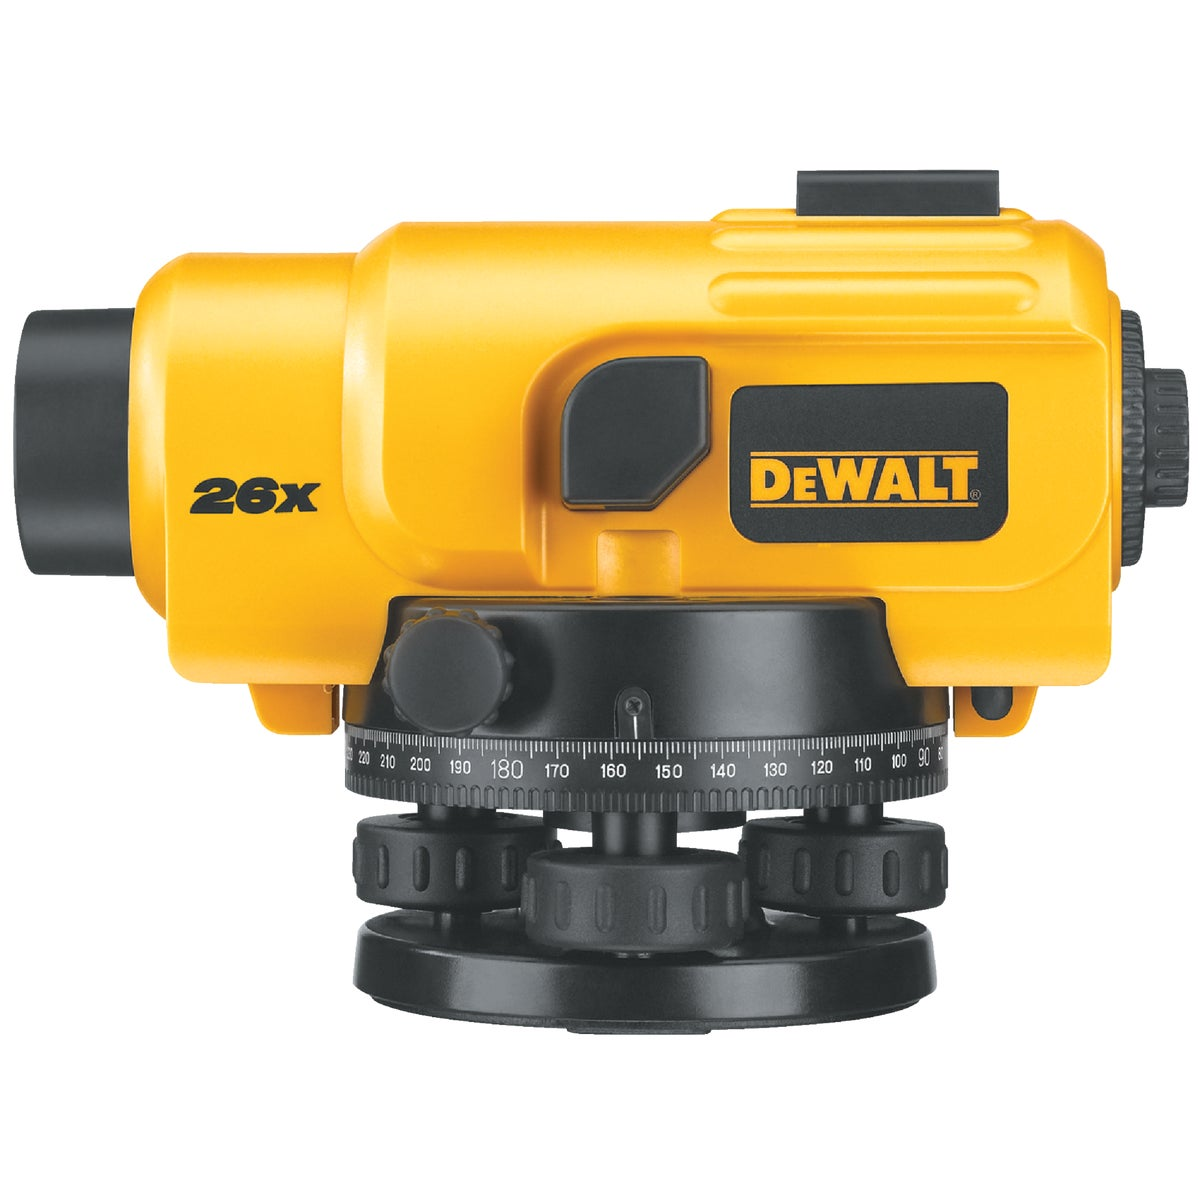 TRANSIT LEVEL - DW096PK by DeWalt